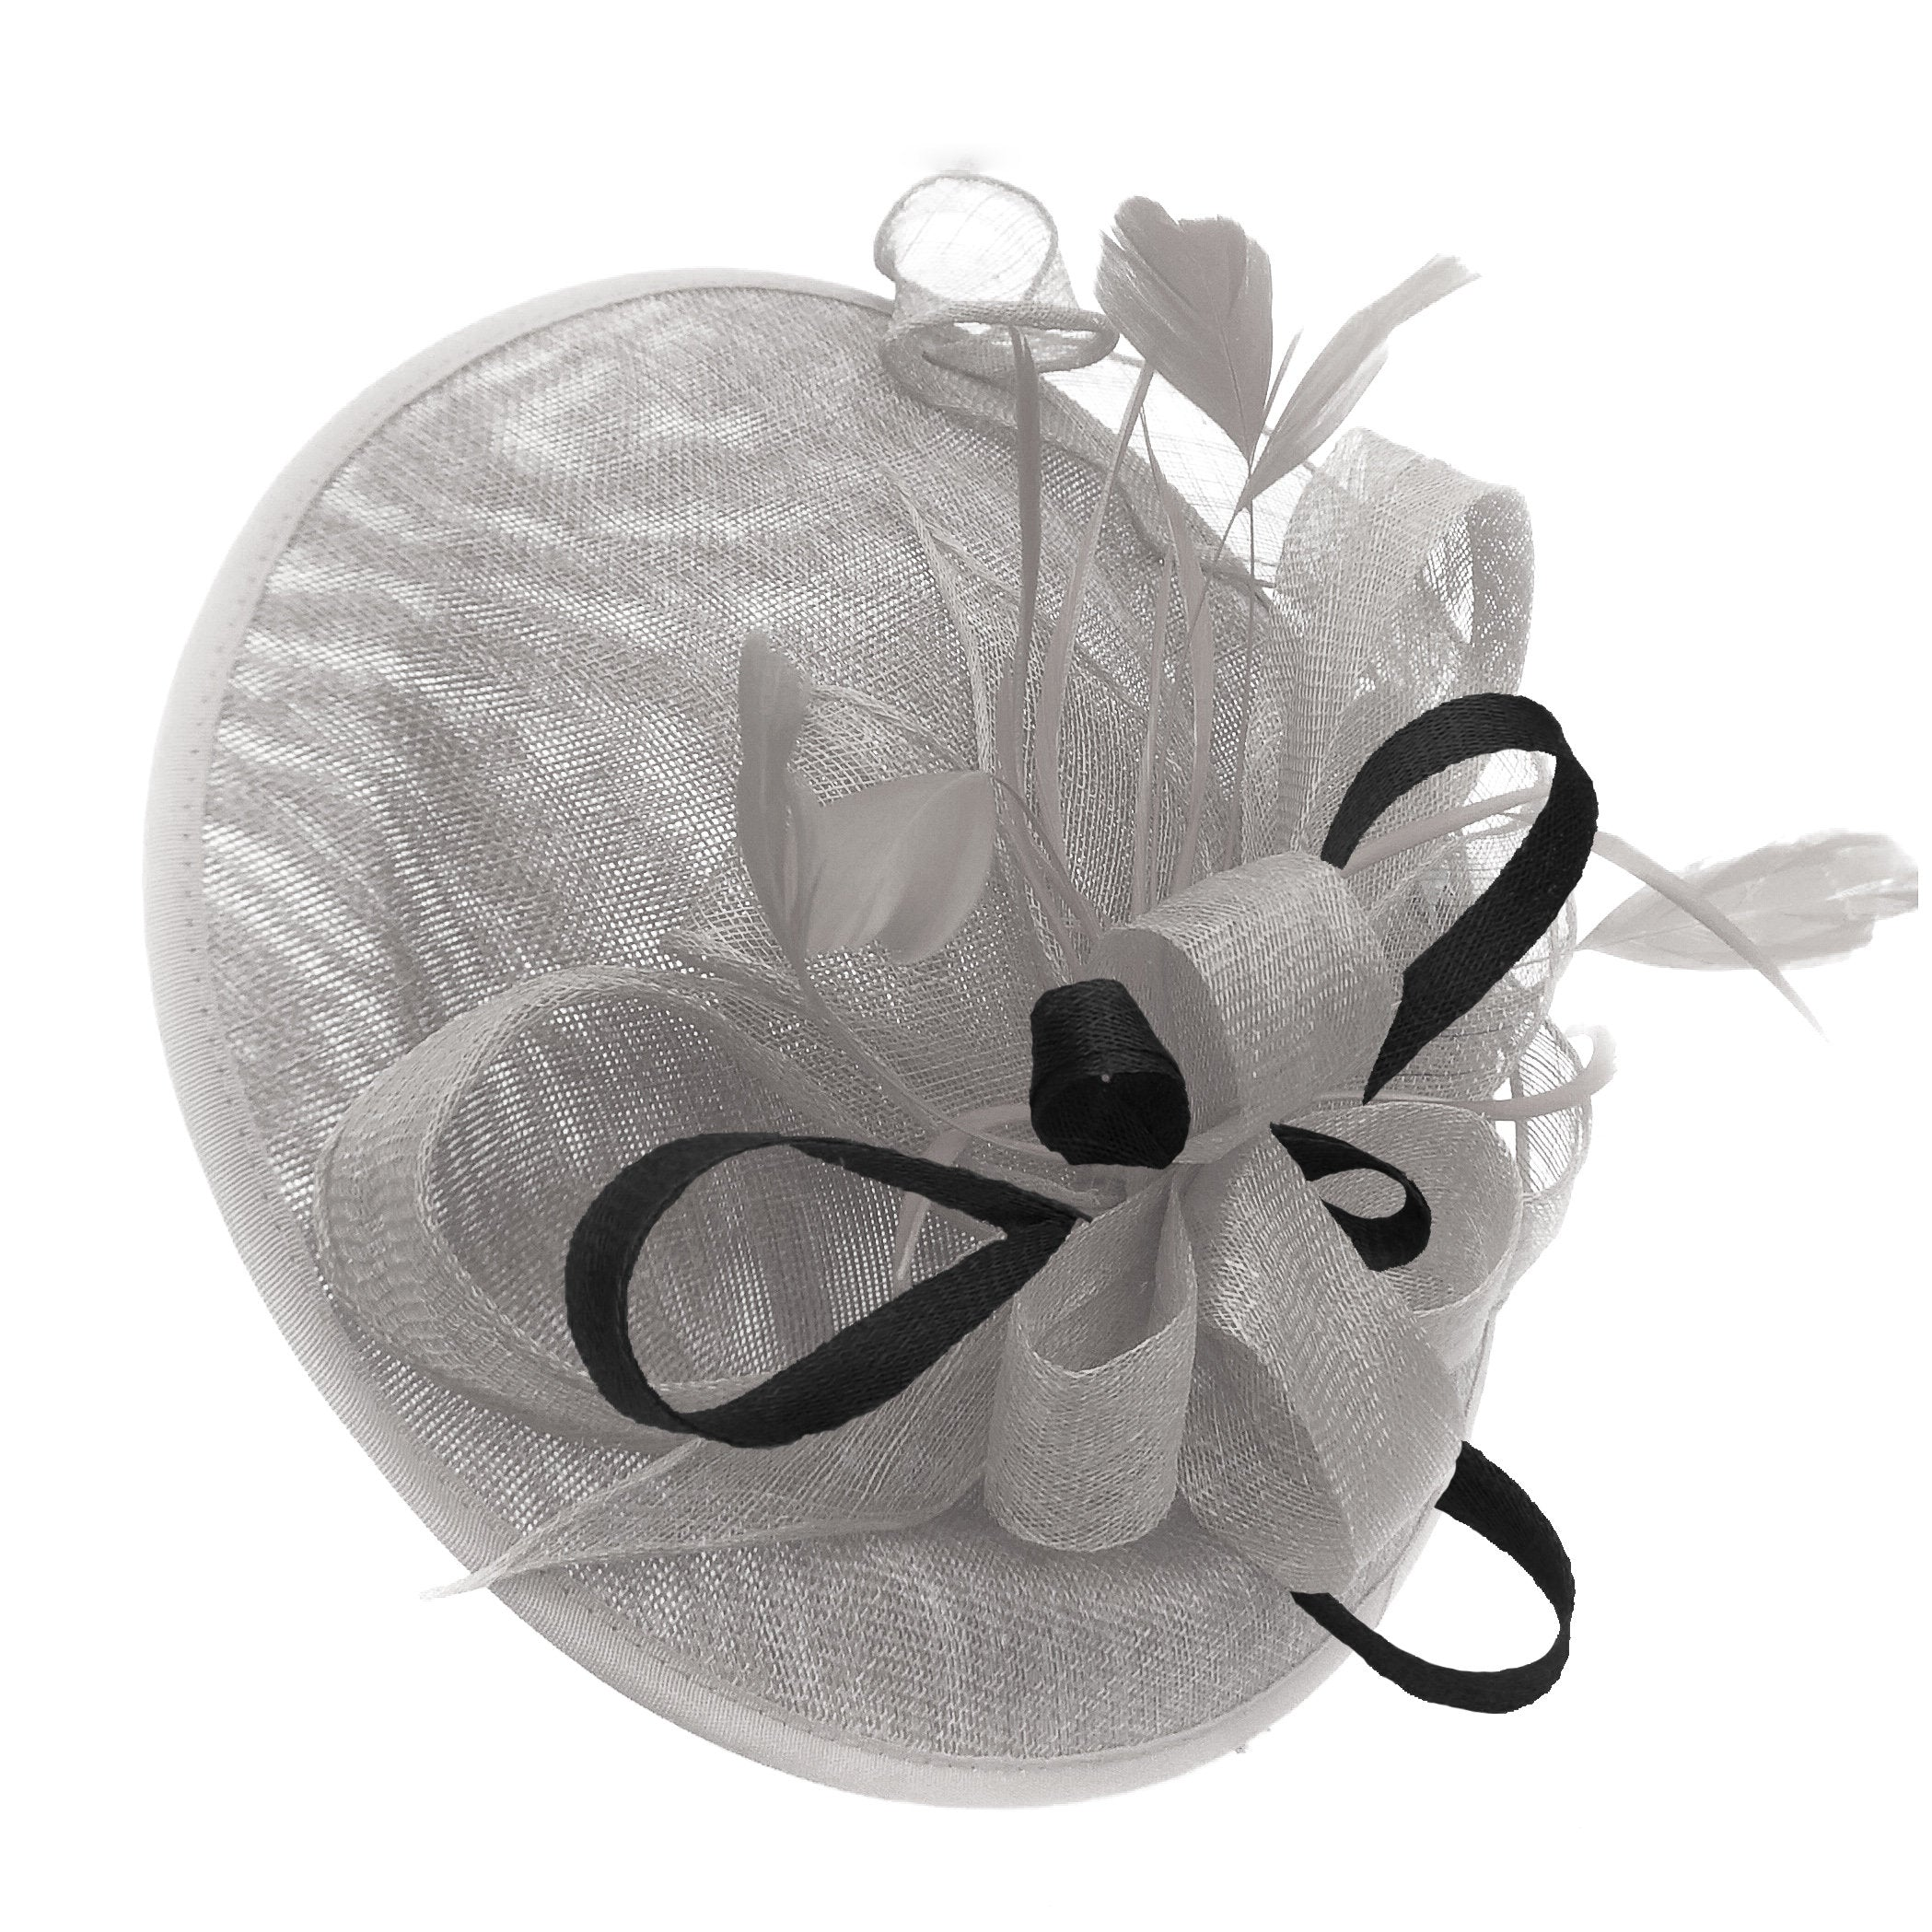 Caprilite Big Saucer Sinamay Silver Grey & Black Mixed Colour Fascinator On Headband